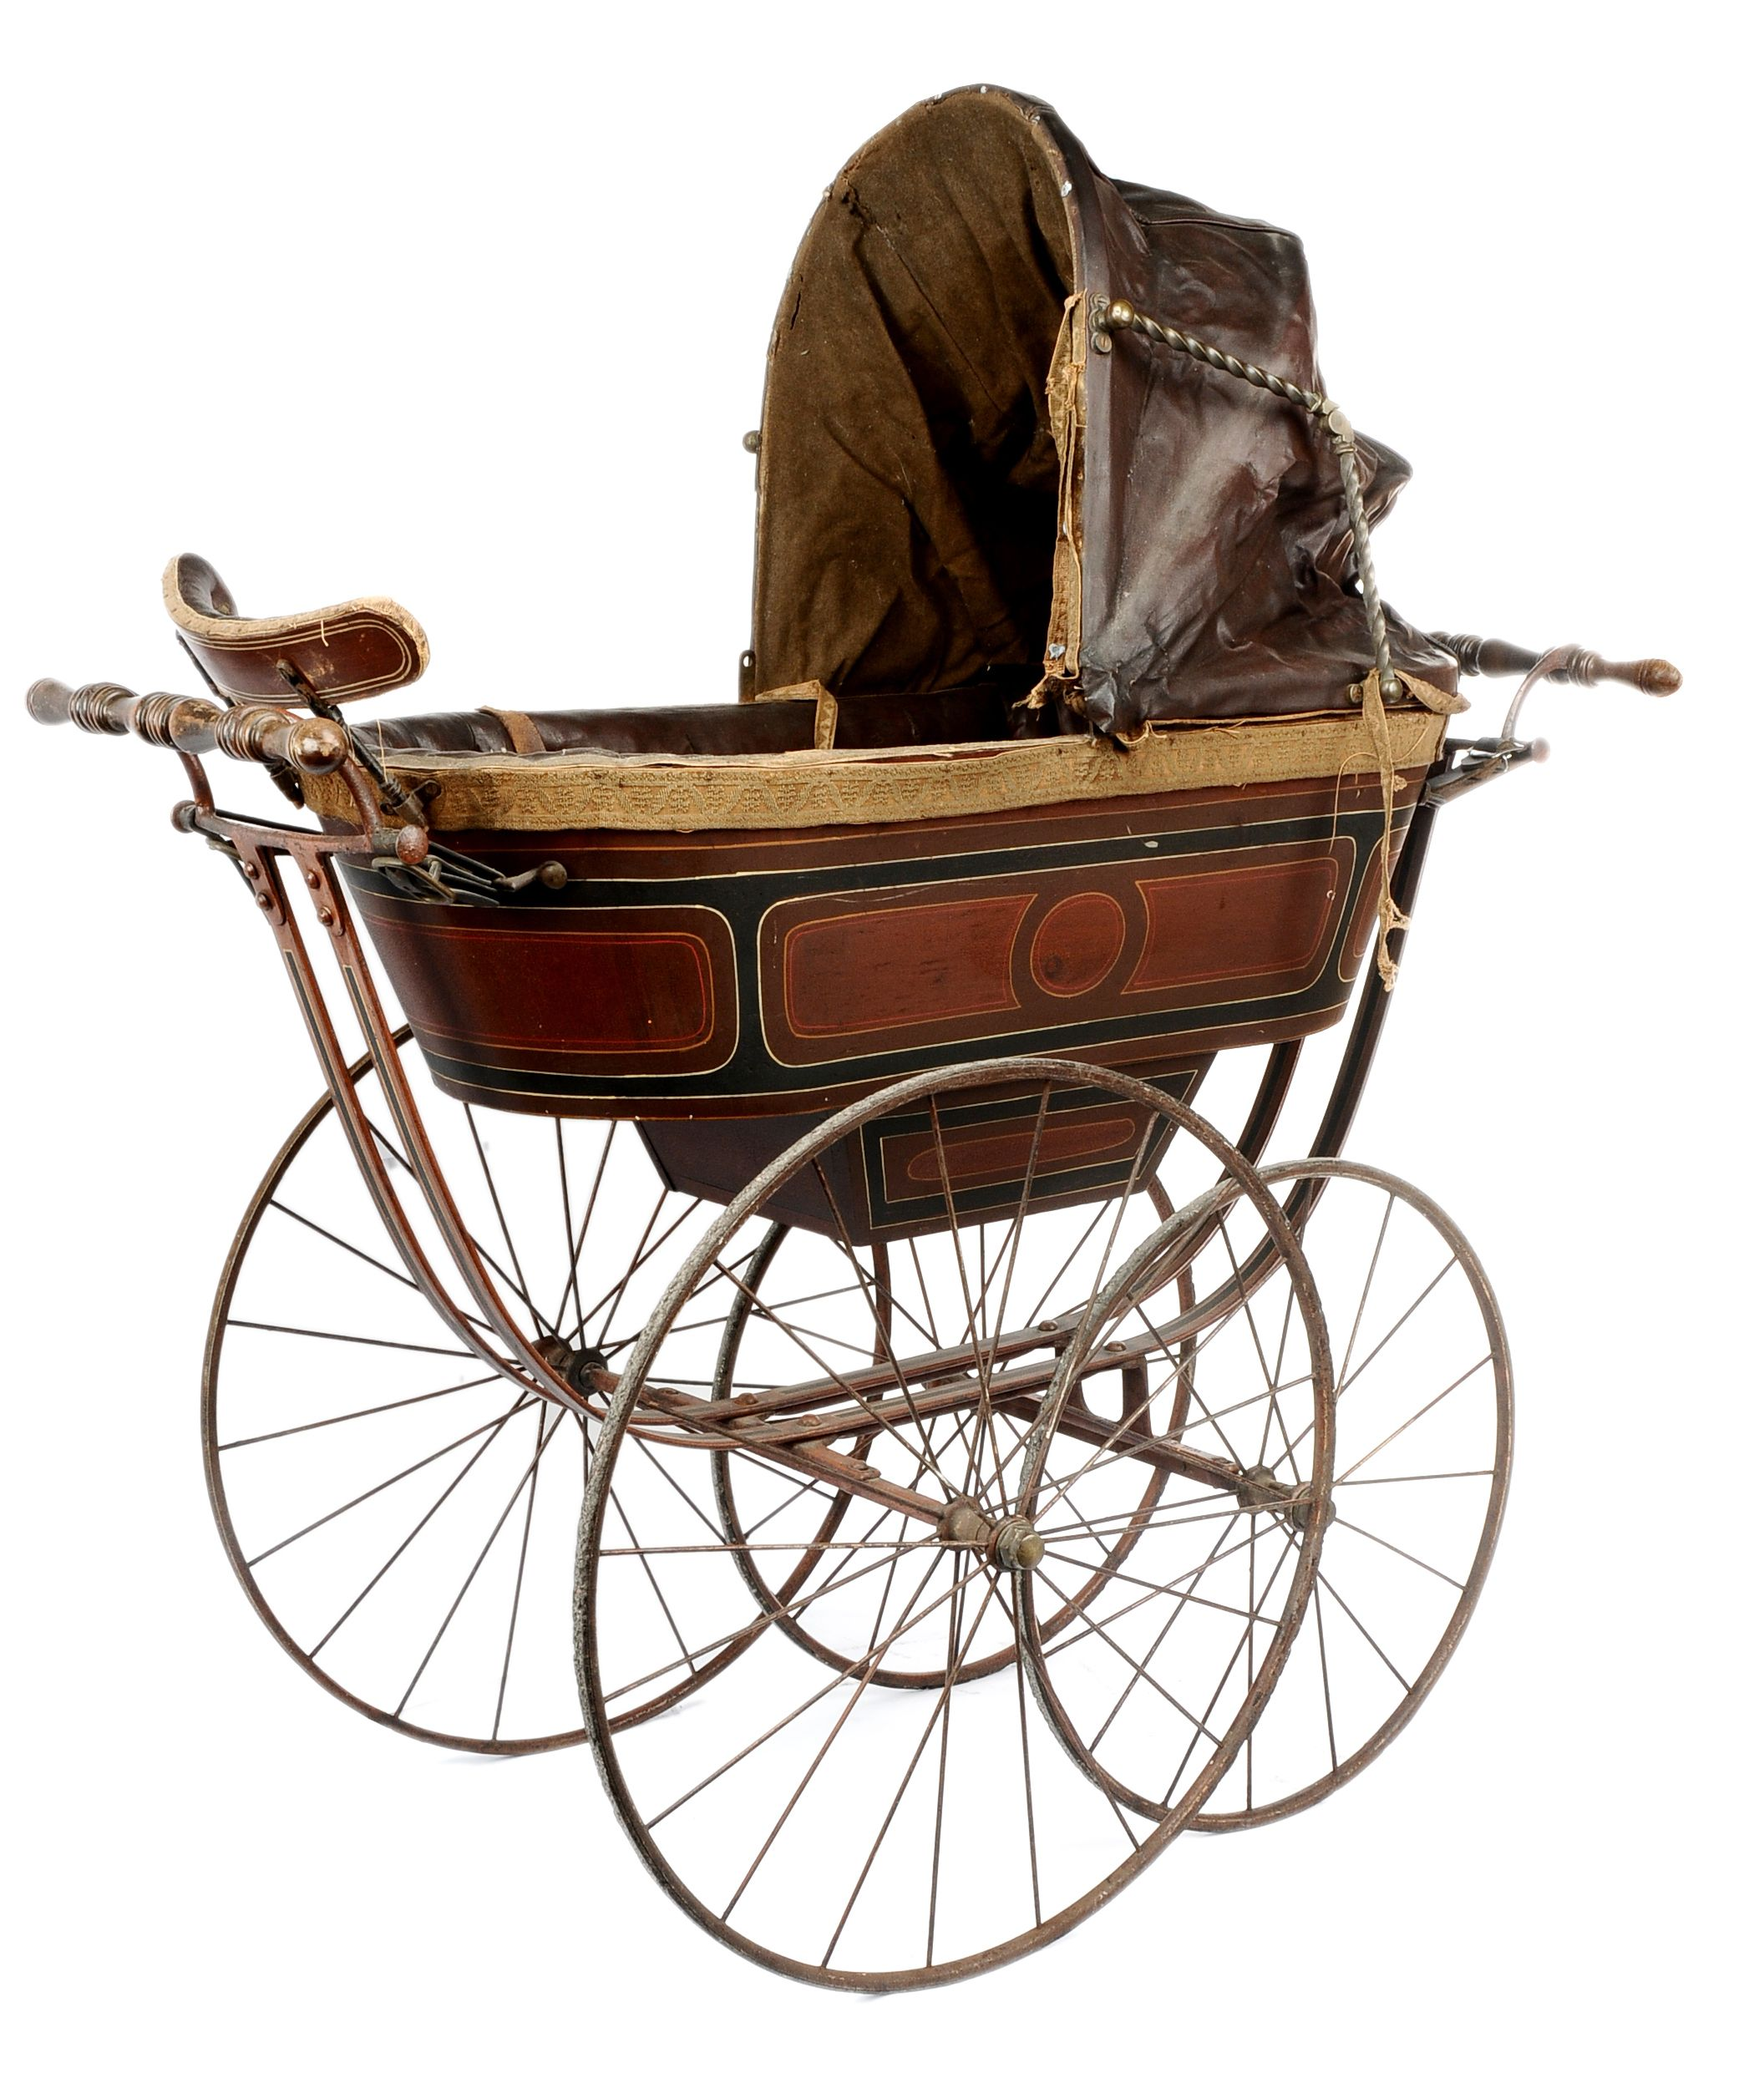 One of the first prams produced by our founder William Wilson has returned home to Silver Cross. The homecoming of this rare 1878 pram is a proud moment indeed. Read our blog to discover its remarkable story: http://www.silvercrossbaby.com/community/wilson-pram/